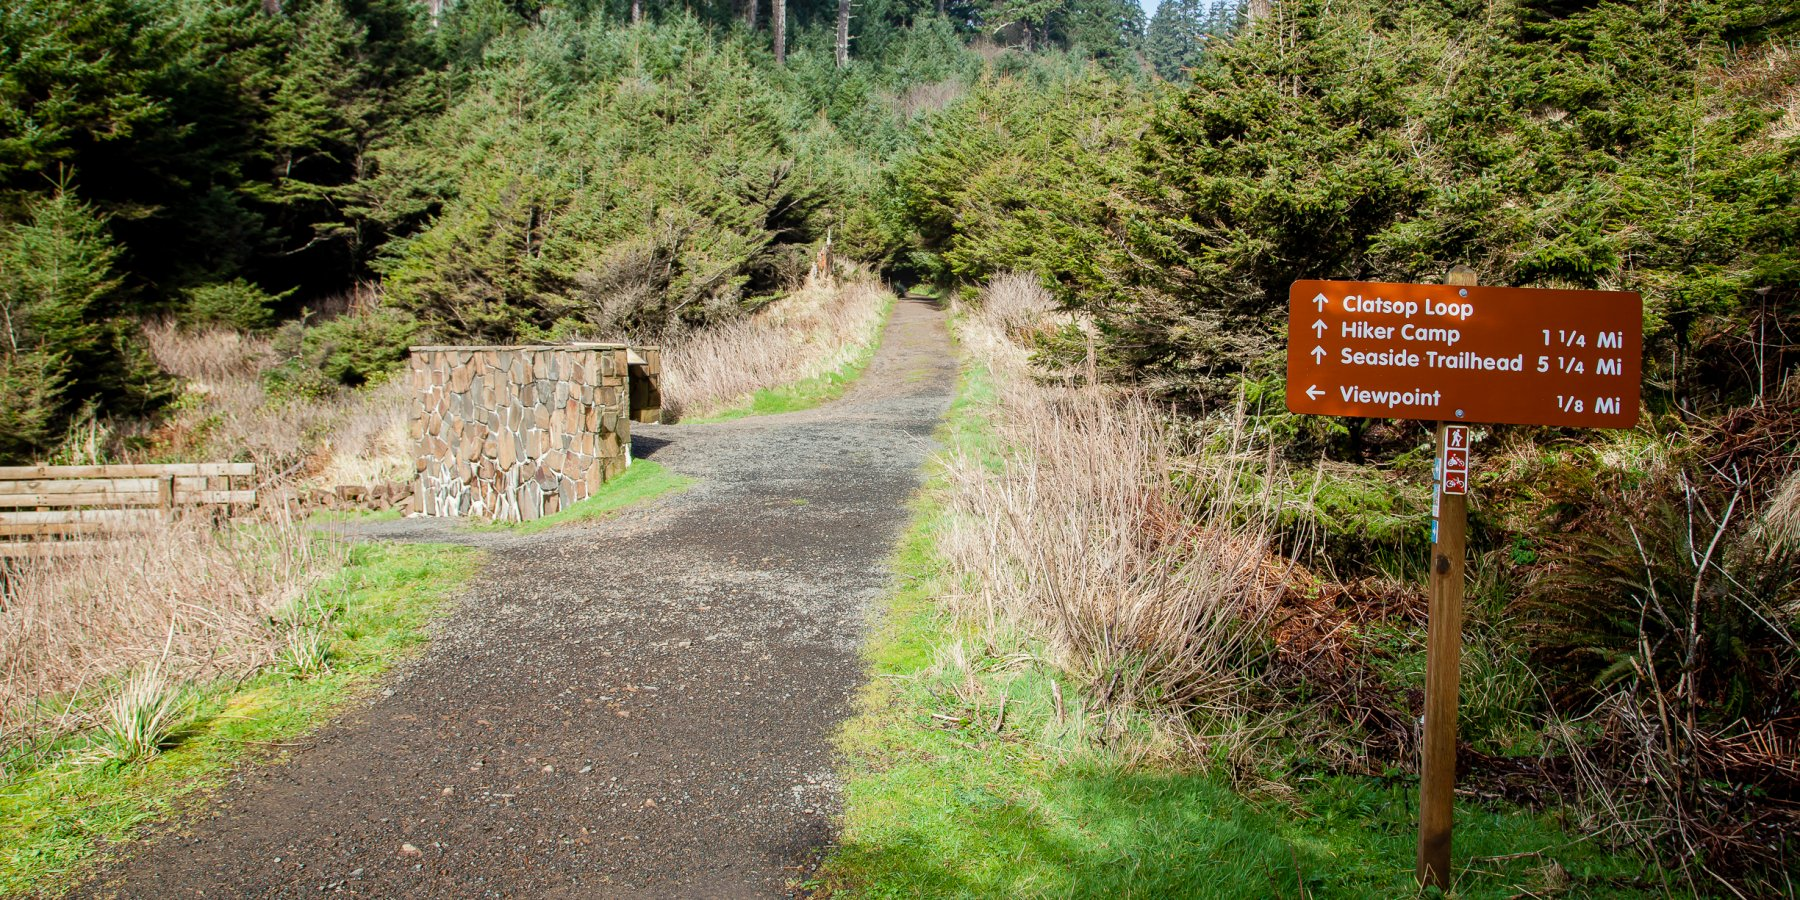 Clatsop Loop Trail